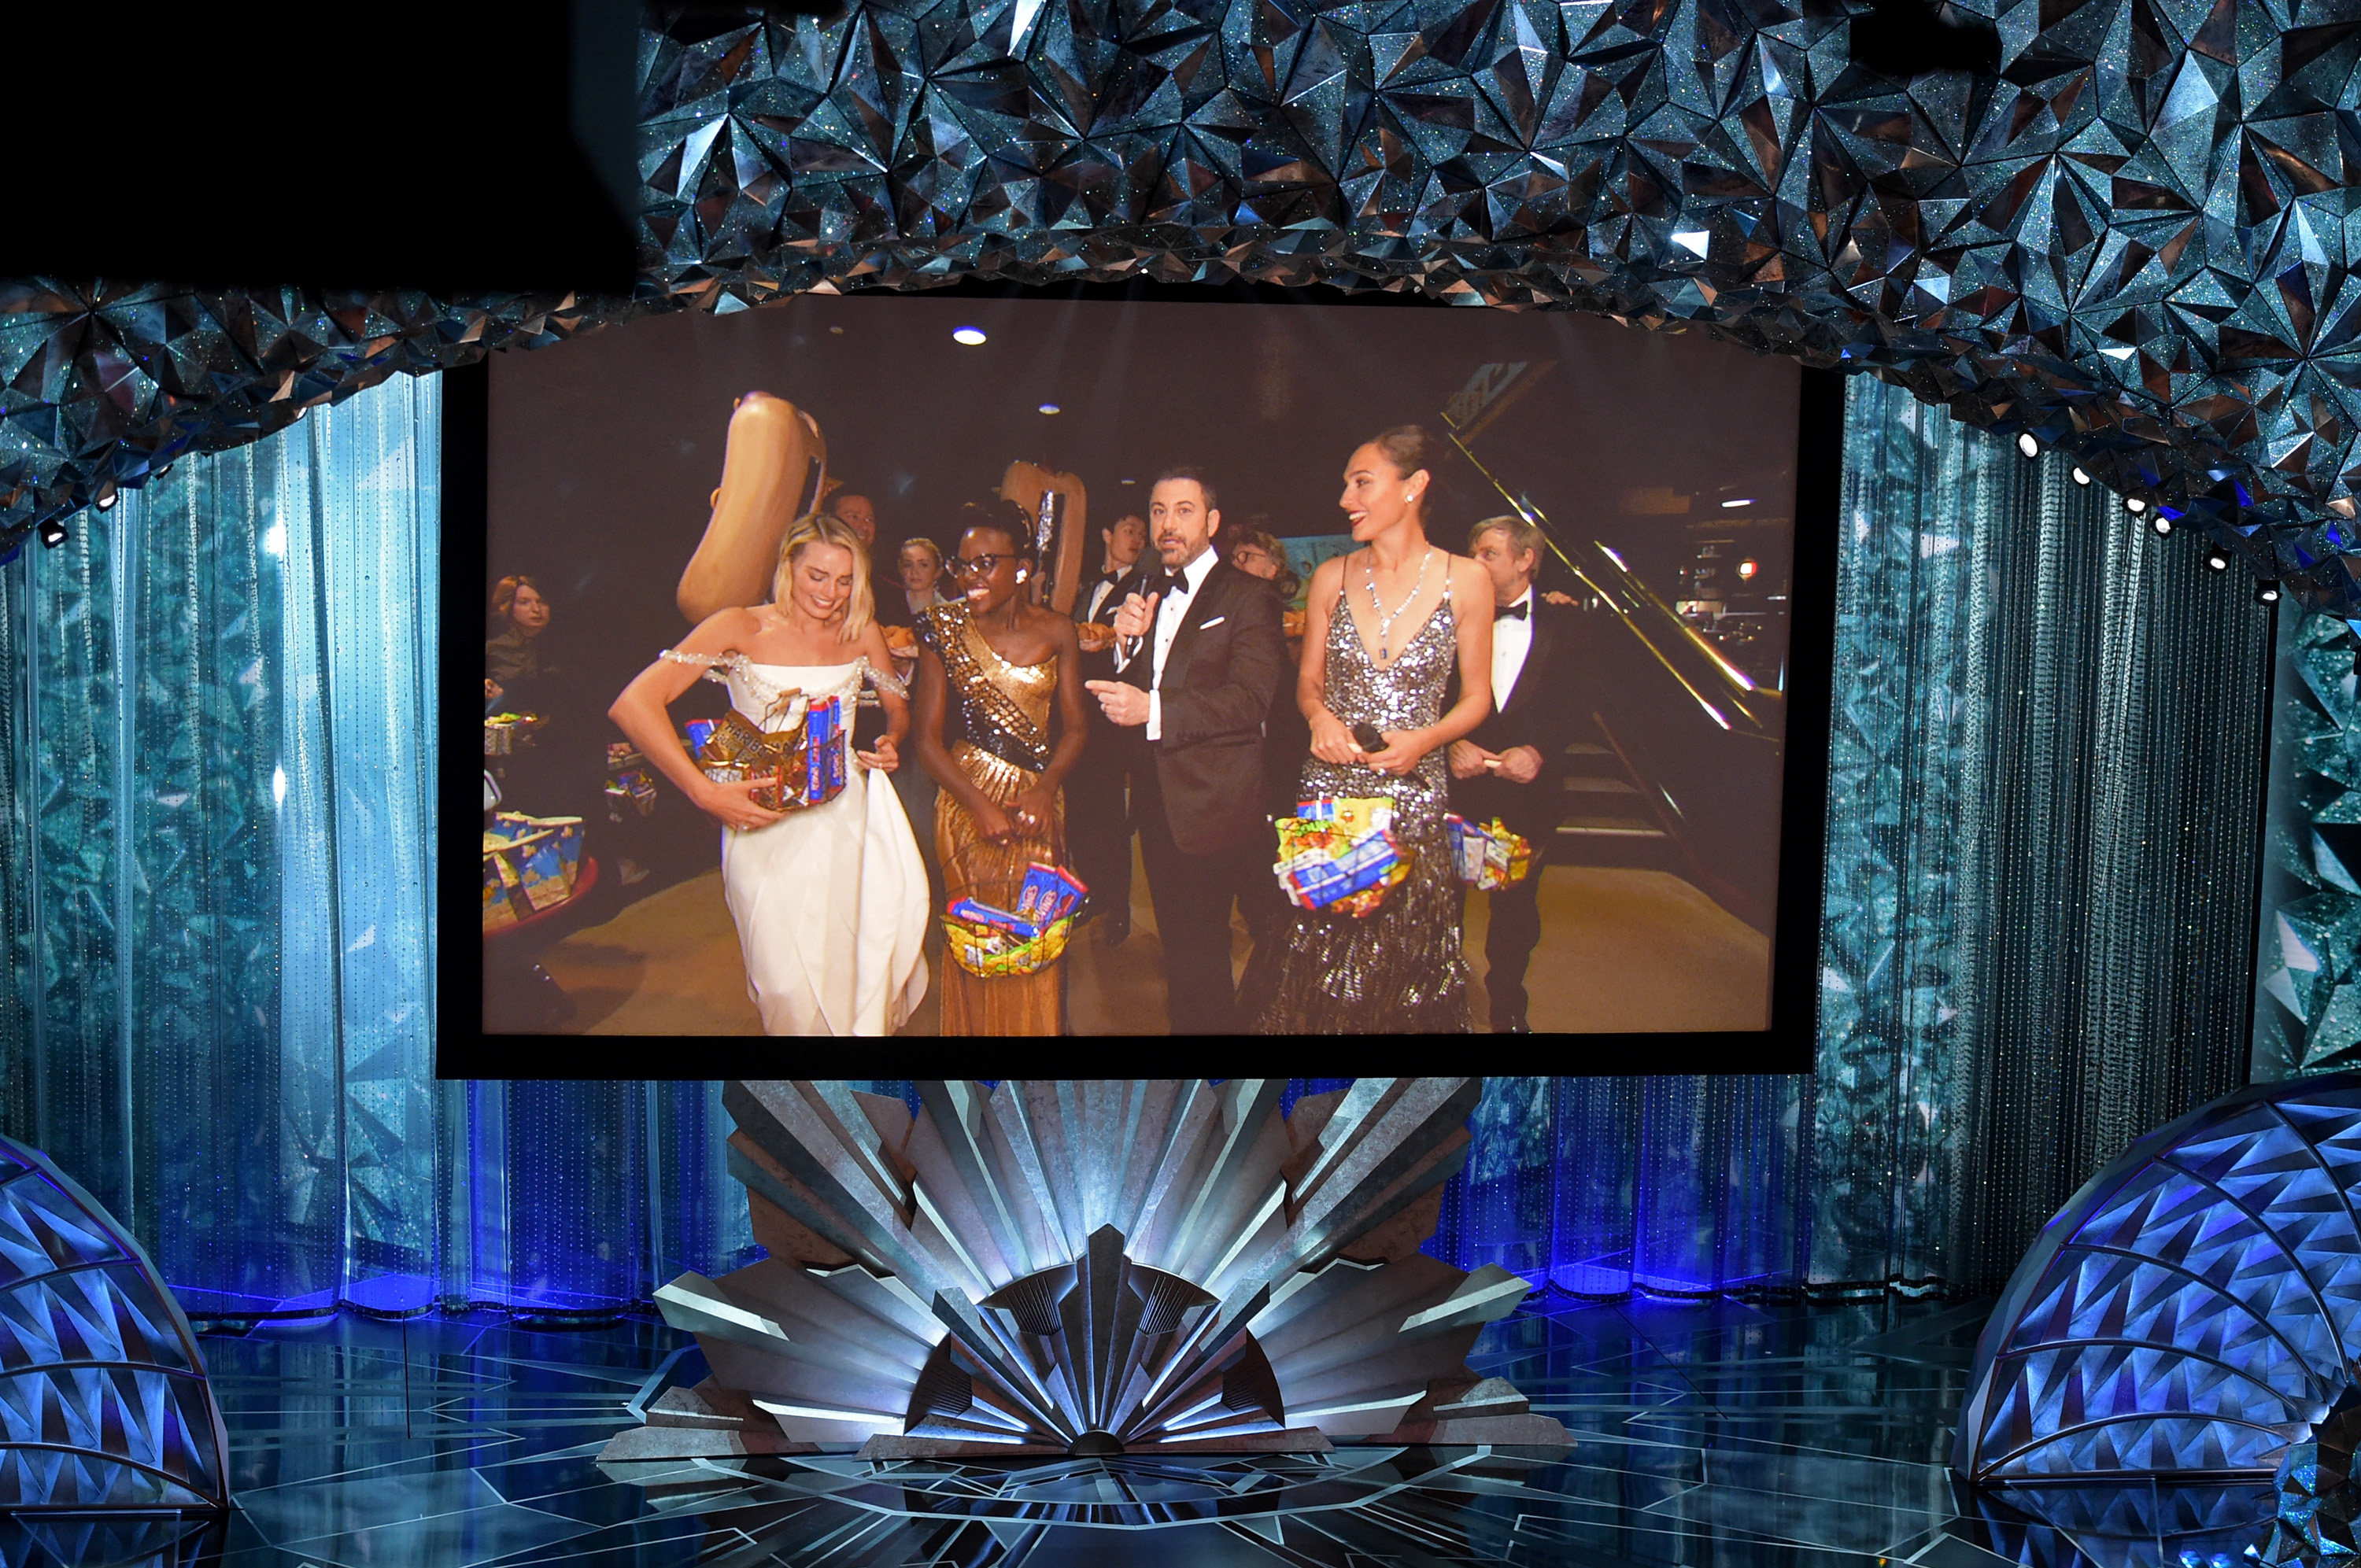 Oscars 2018- Our 10 Favorite Moments from Last Night_11 oscars 2018 Oscars 2018: Our 10 Favorite Moments from Last Night Oscars 2018 Our 10 Favorite Moments from Last Night 12